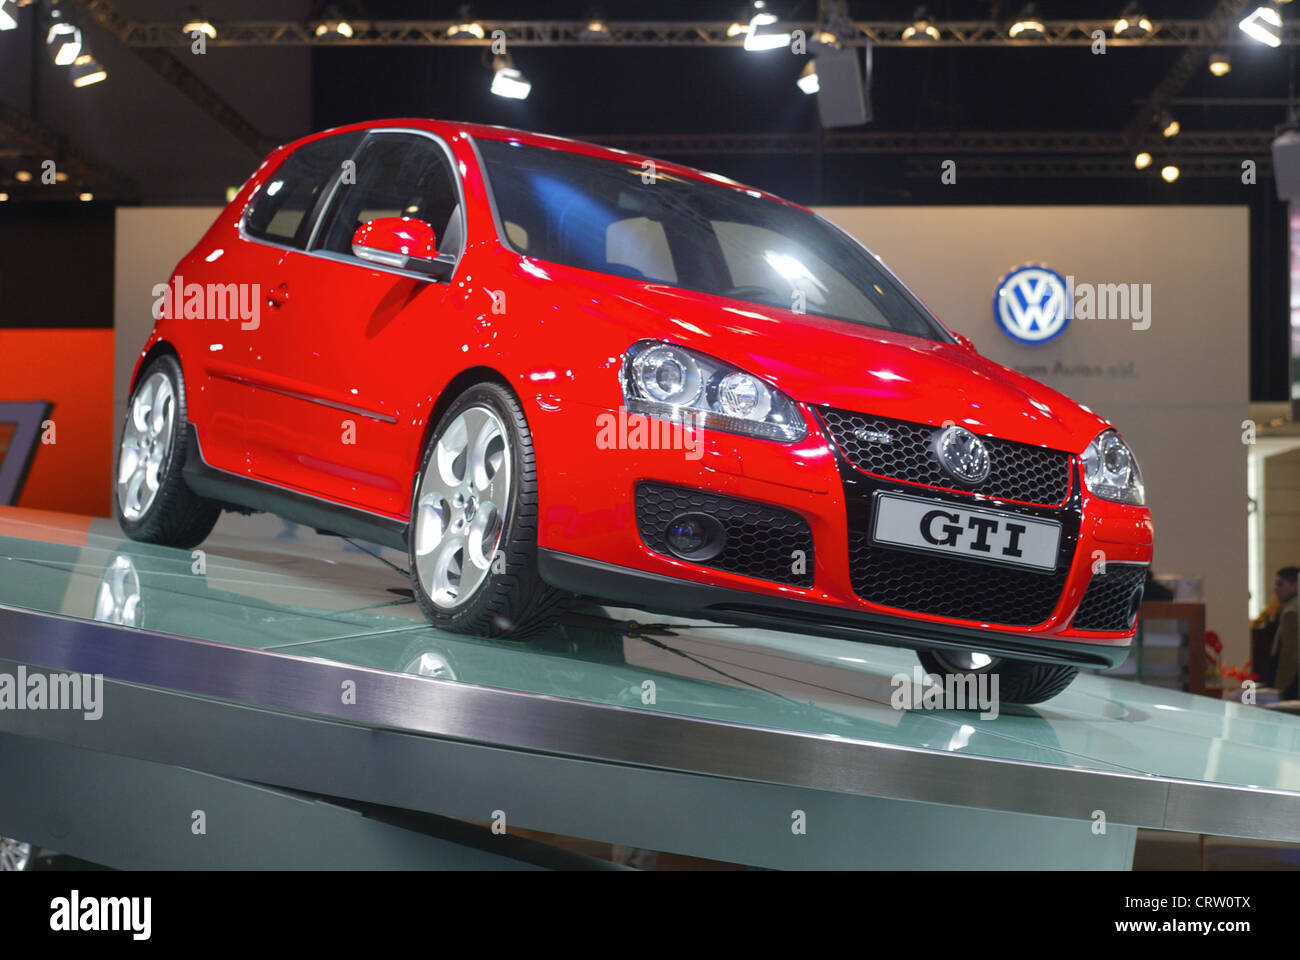 Red Vw Gti High Resolution Stock Photography And Images Alamy